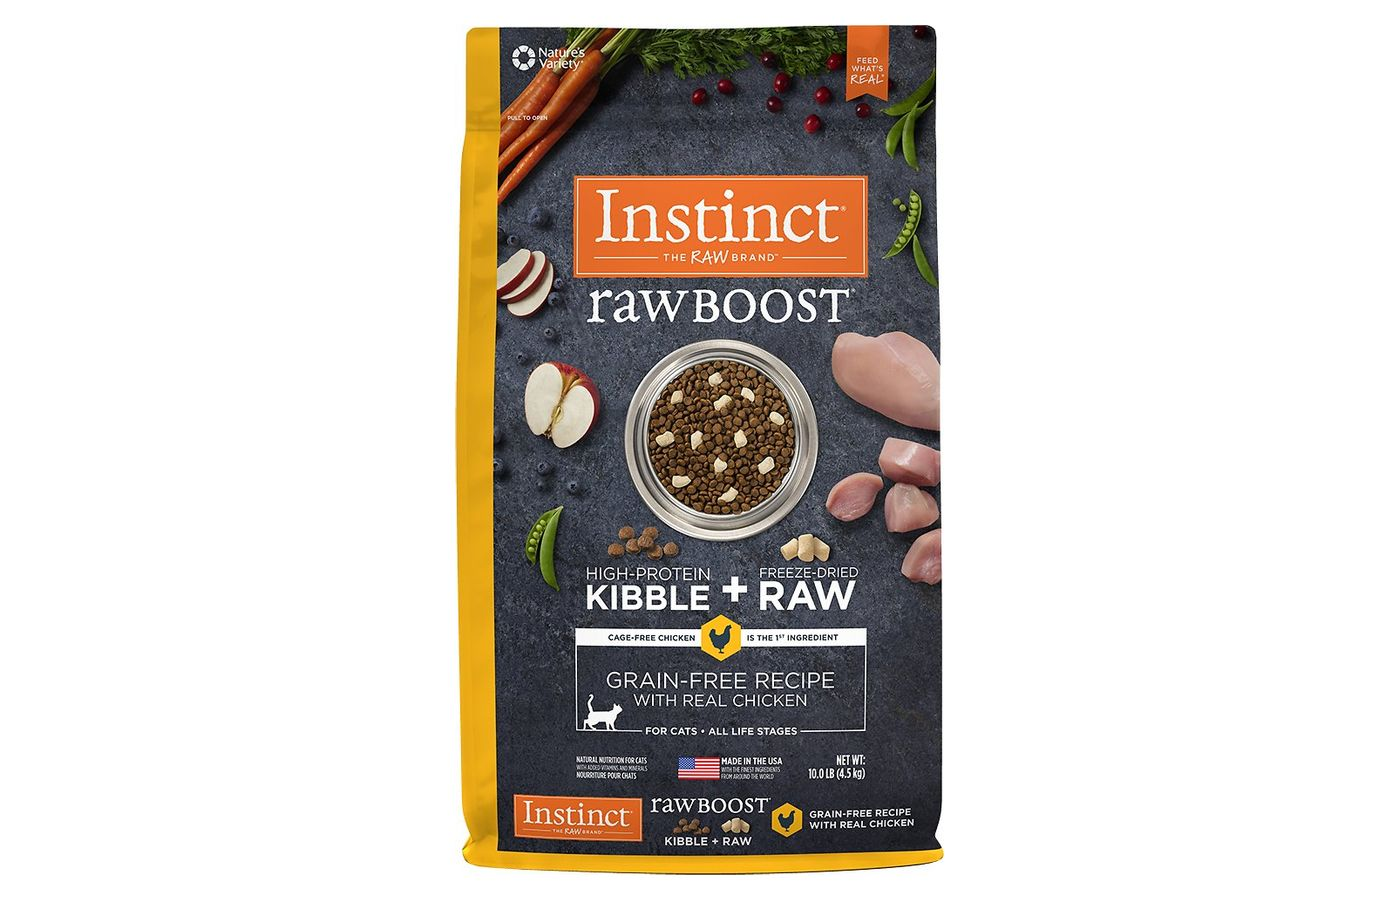 Instinct by Nature's Variety Raw Boost Grain-Free Recipe with Real Chicken Dry Cat Food